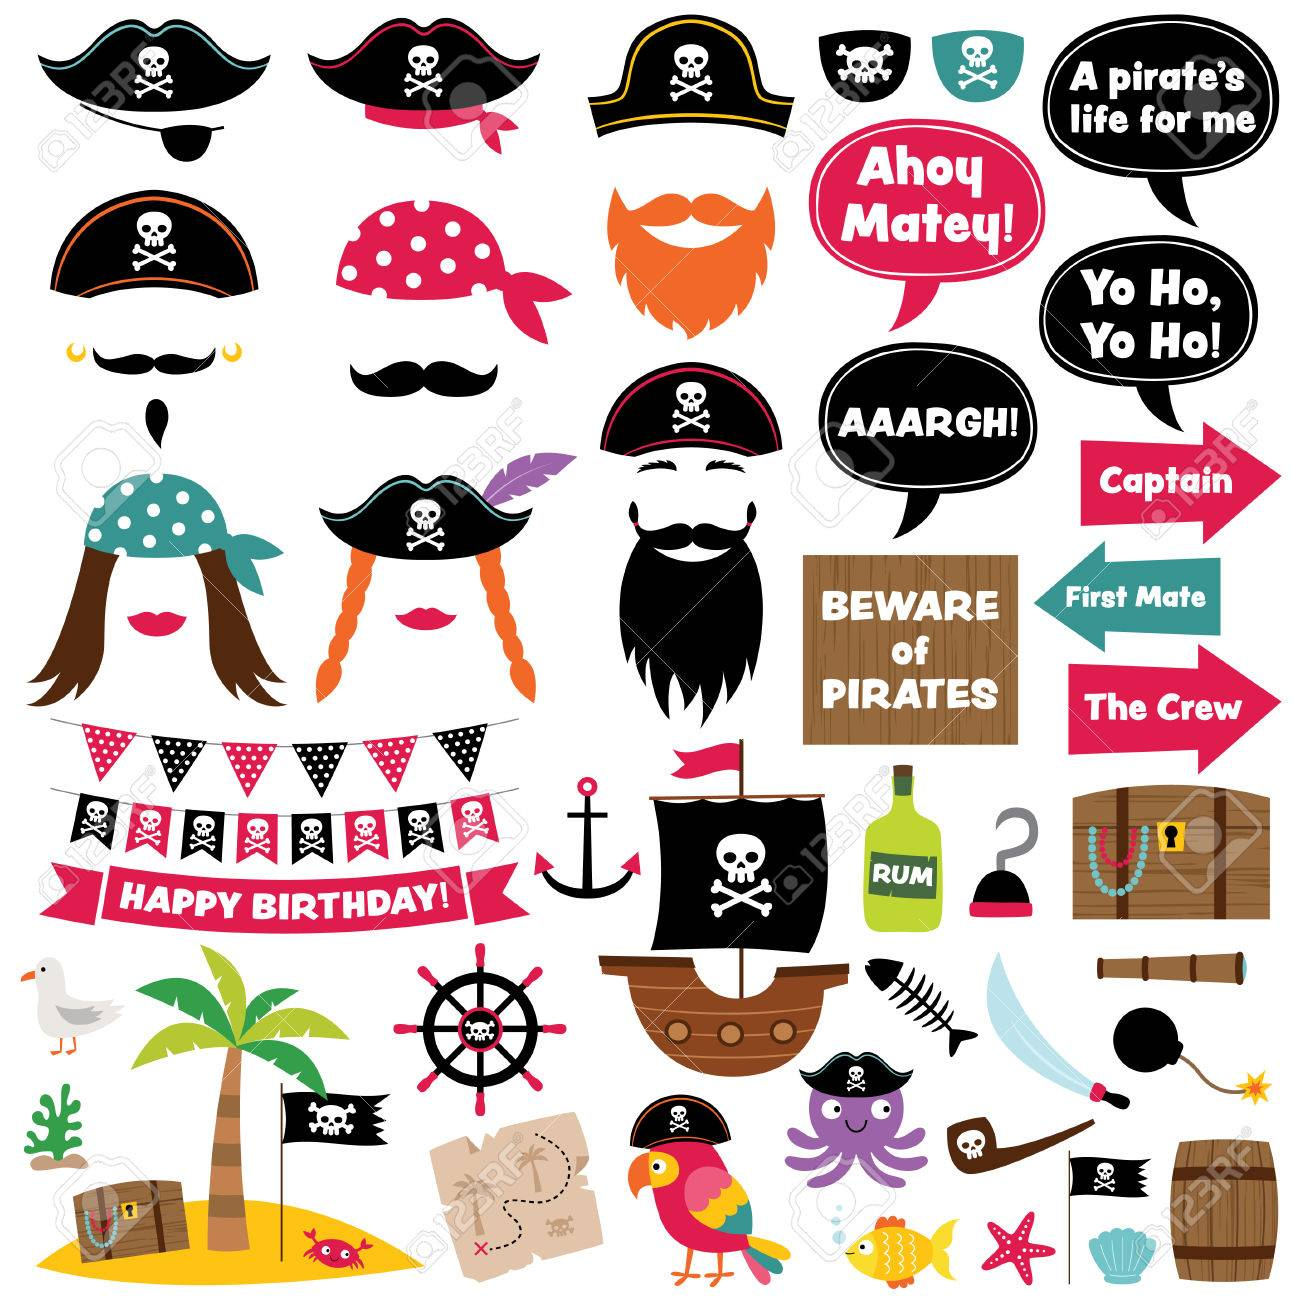 Pirate Party Cartoon Decoration And Photo Booth Props Royalty Free